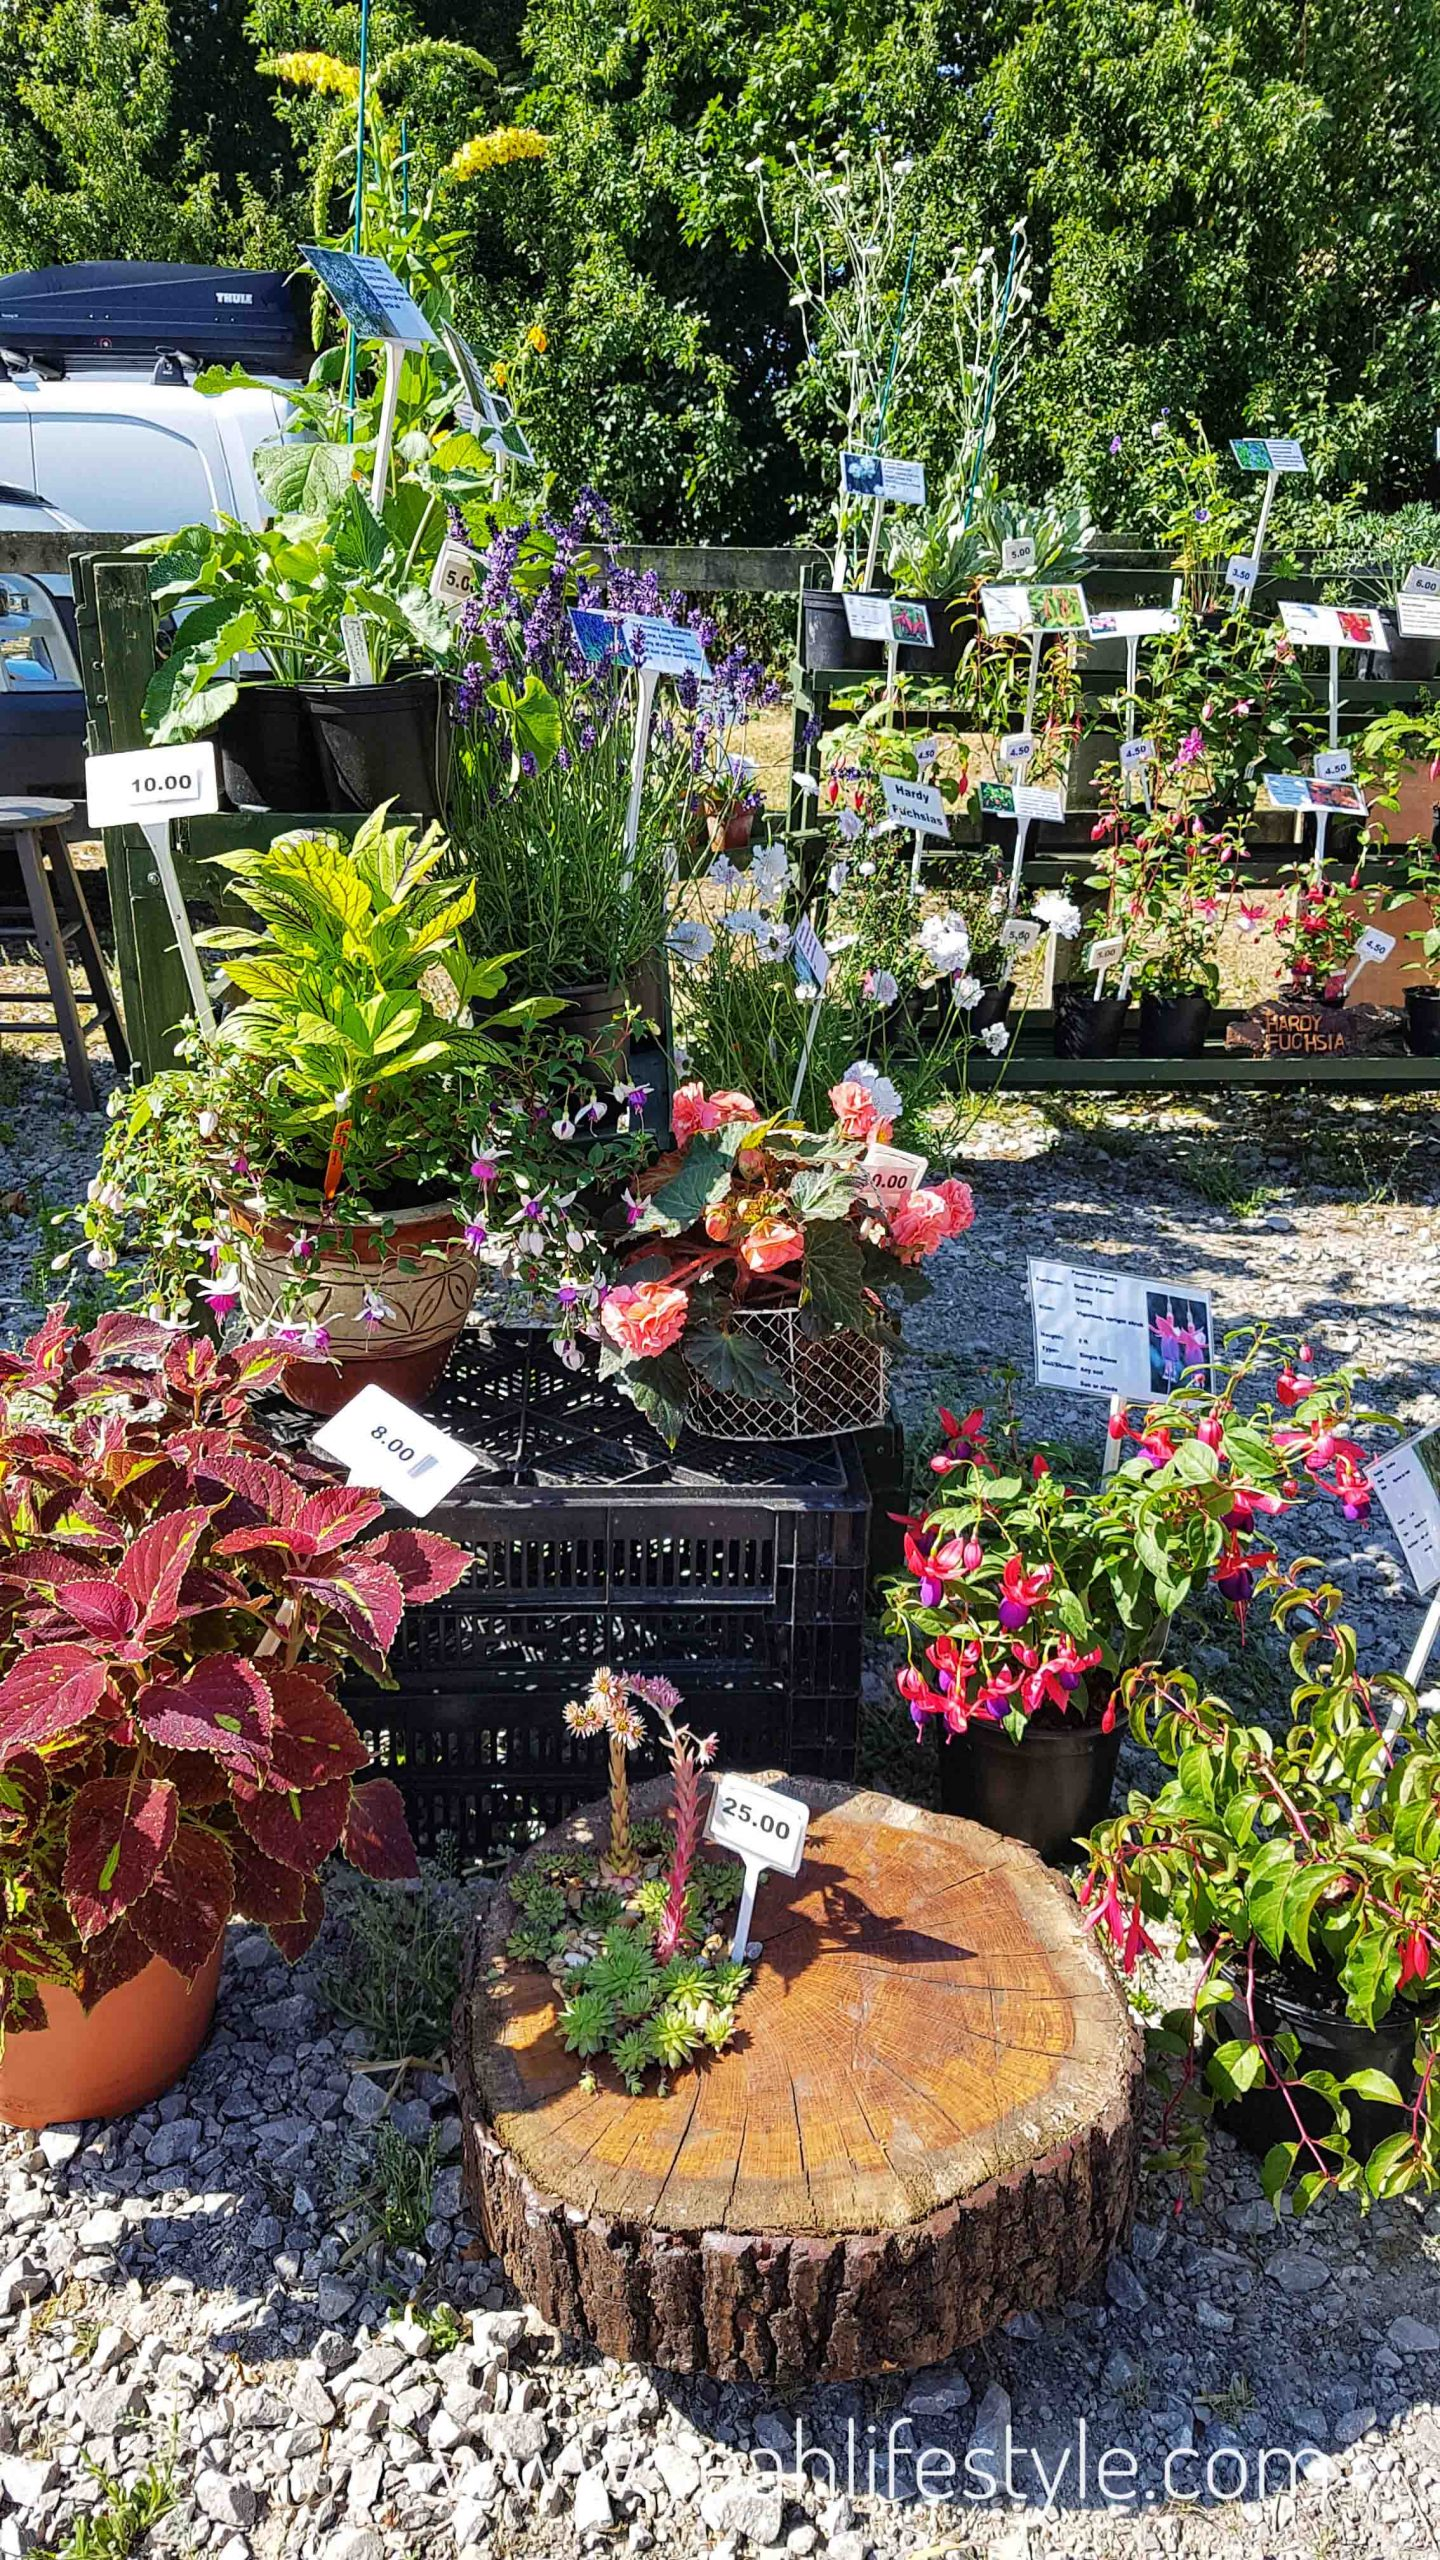 rode-hall-farmers-market-scholar-green-cheshire-blogger-review-outdoor-plants